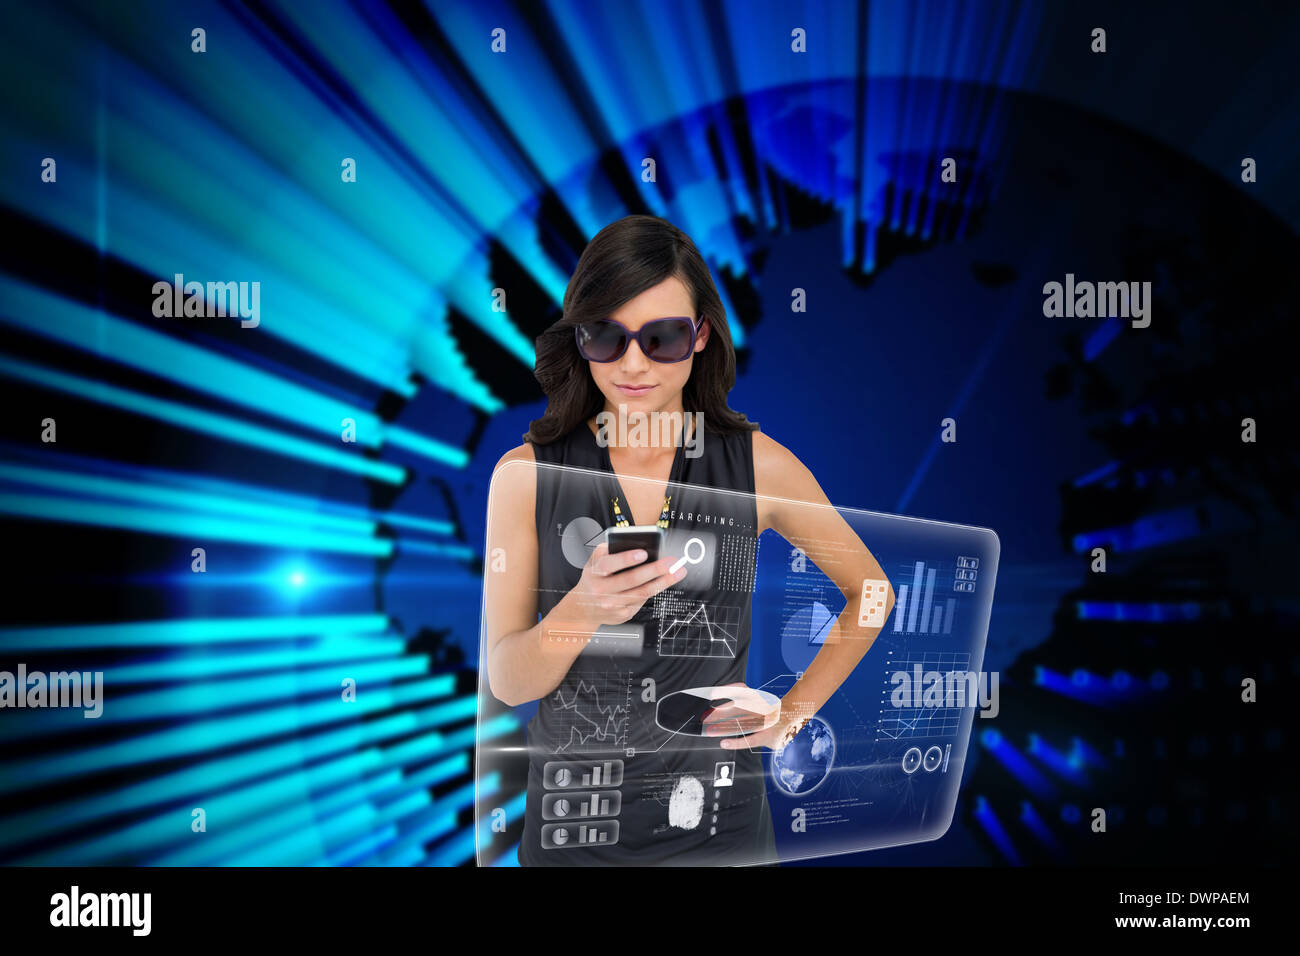 Glamorous brunette using smartphone with interface - Stock Image